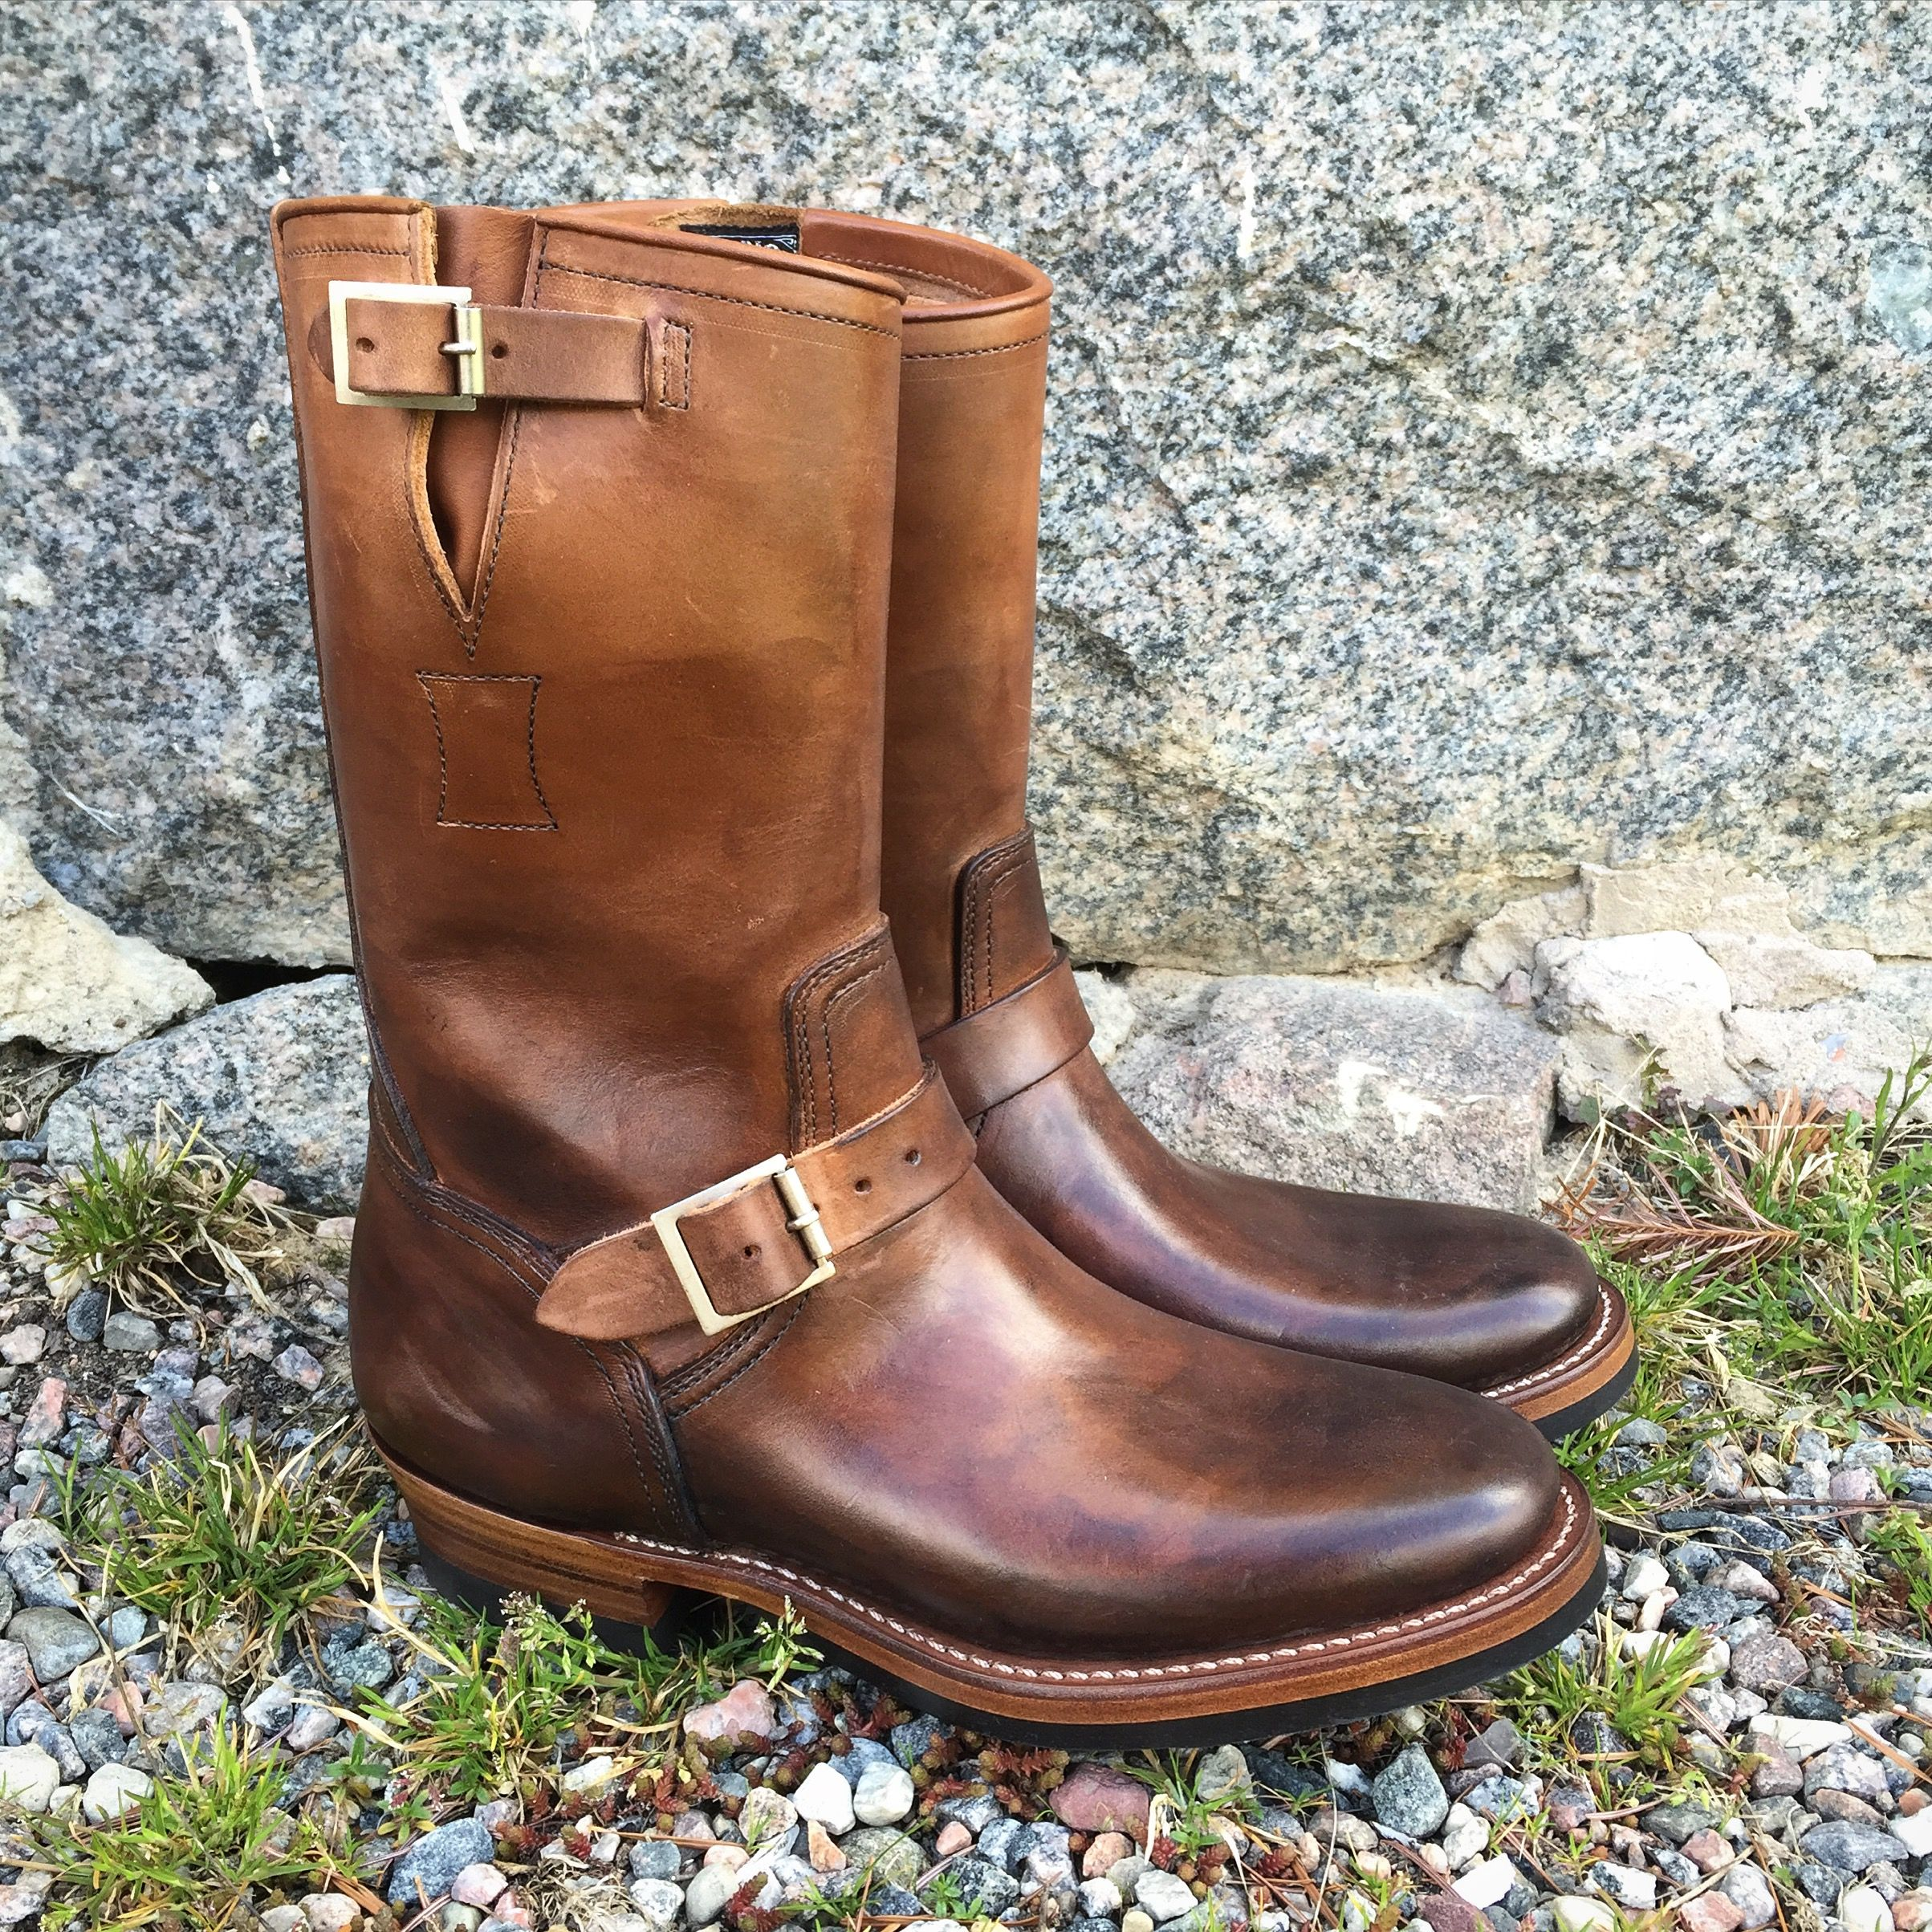 Clinch Engineer Boots Cn Last Made In Japan Brass Tokyo